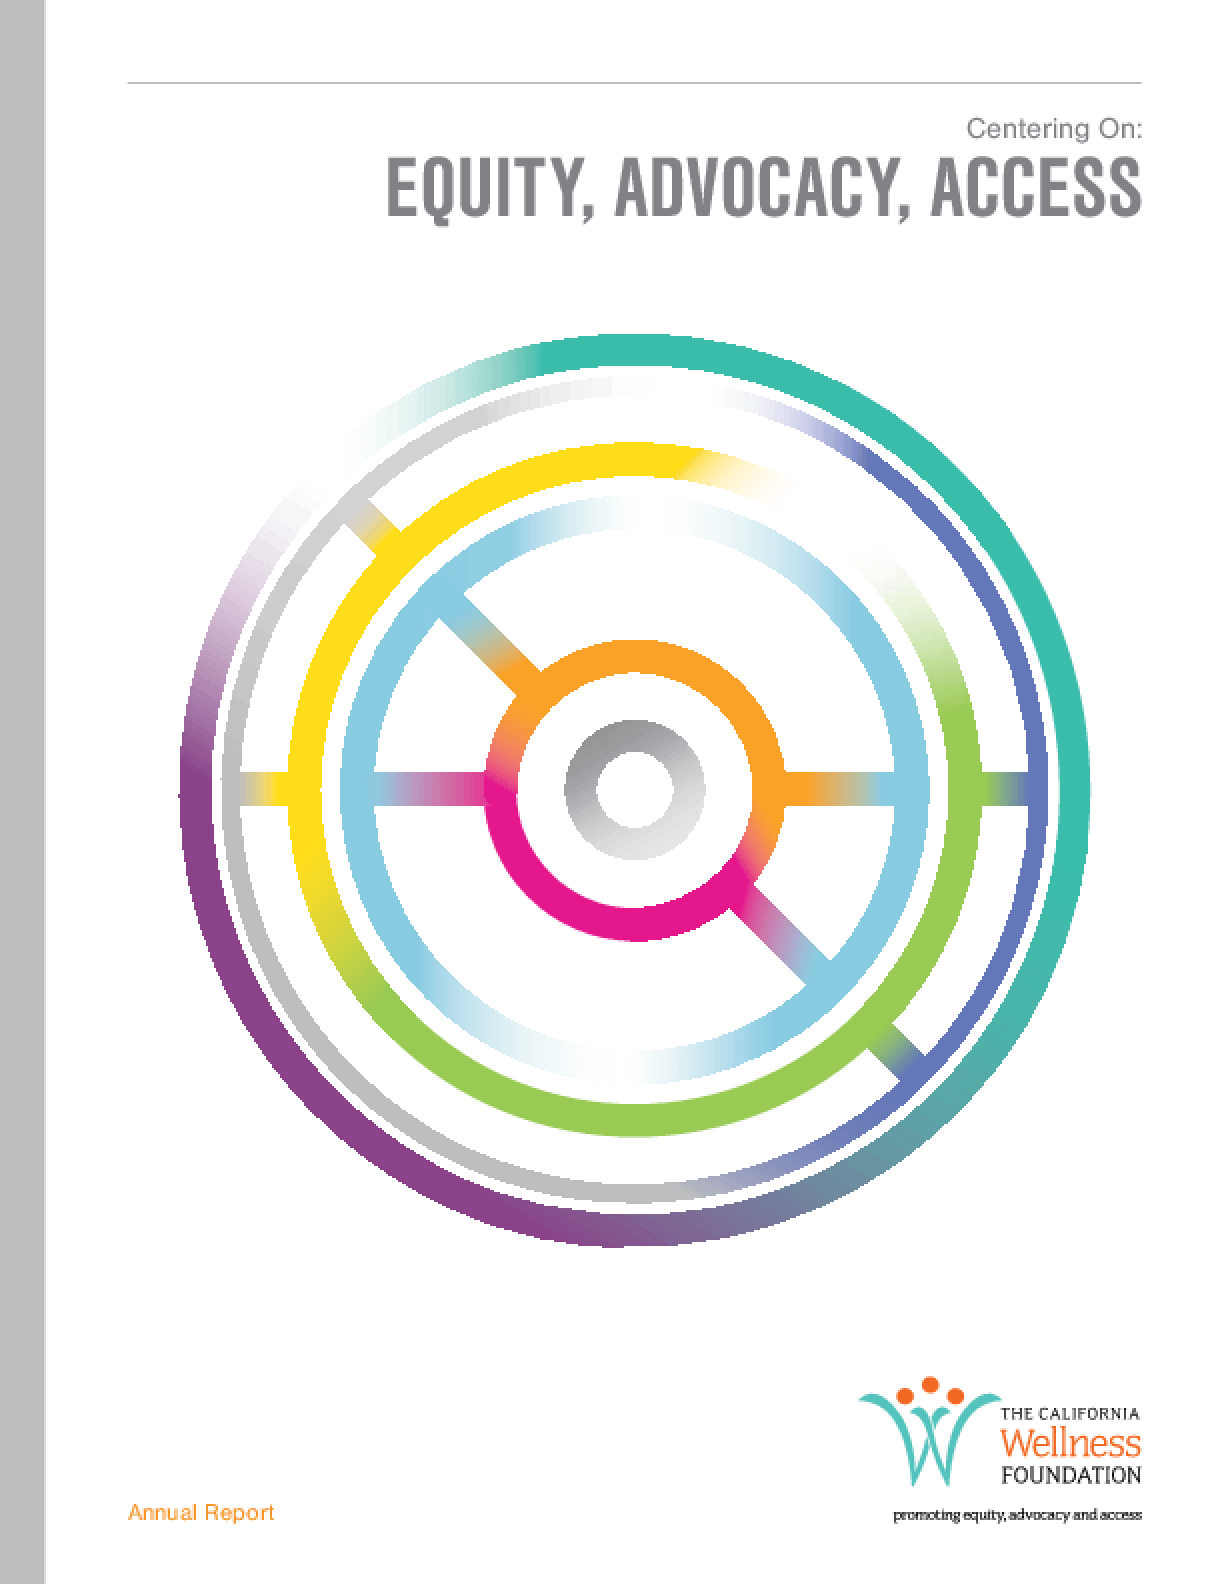 Centering On: Equity, Advocacy, Access: The California Wellness Foundation Annual Report